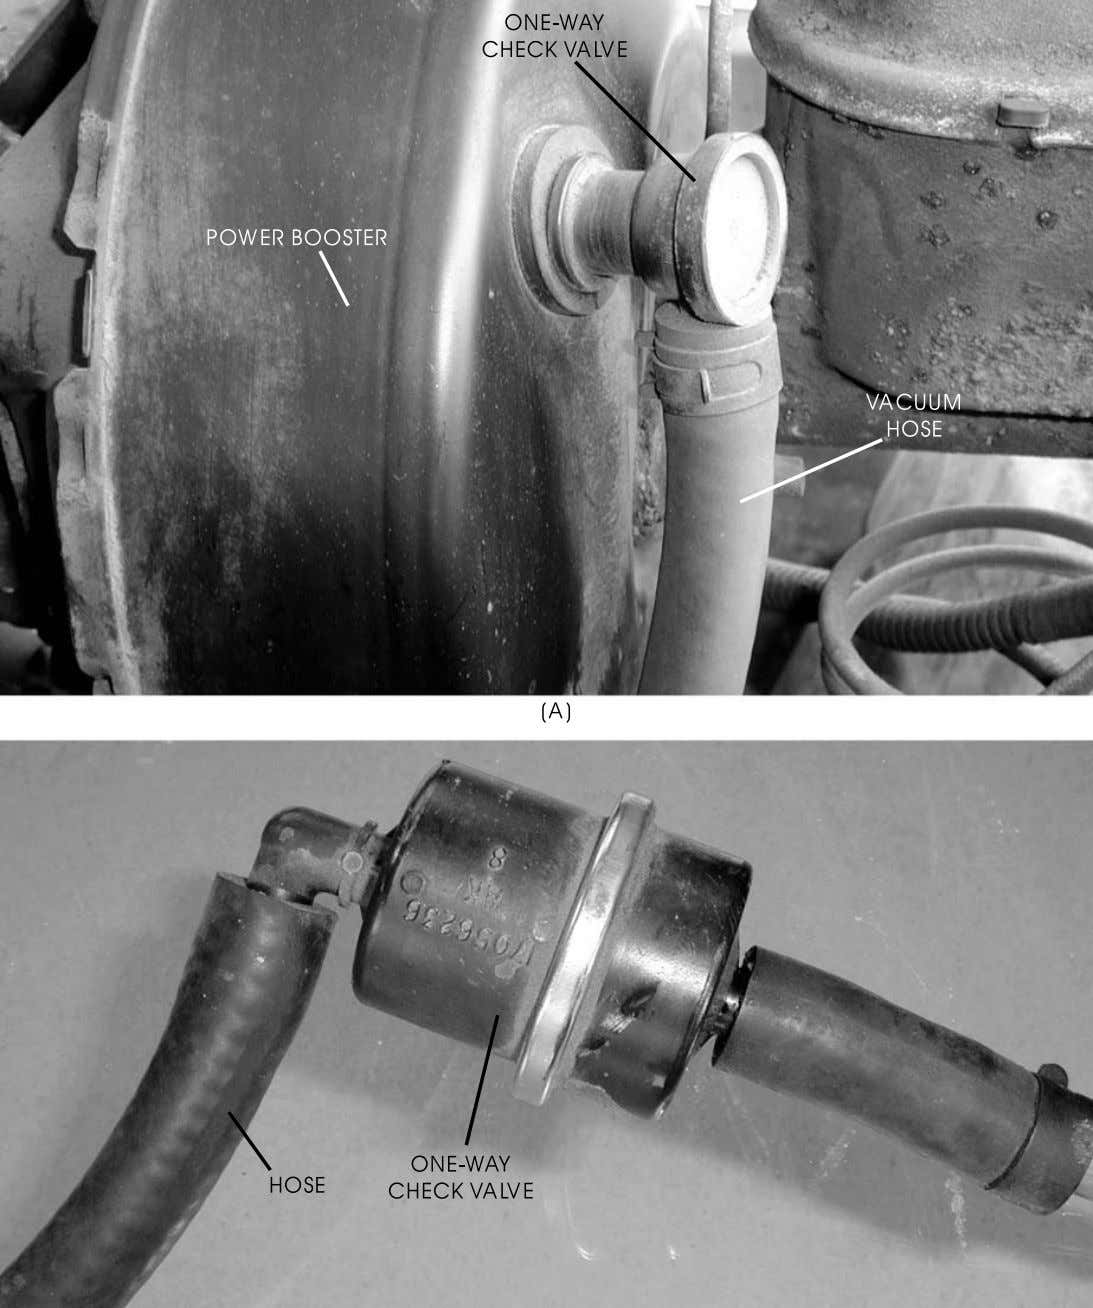 Automotive Braking Systems 47 FIGURE 34—The check valve is a very important component of the power